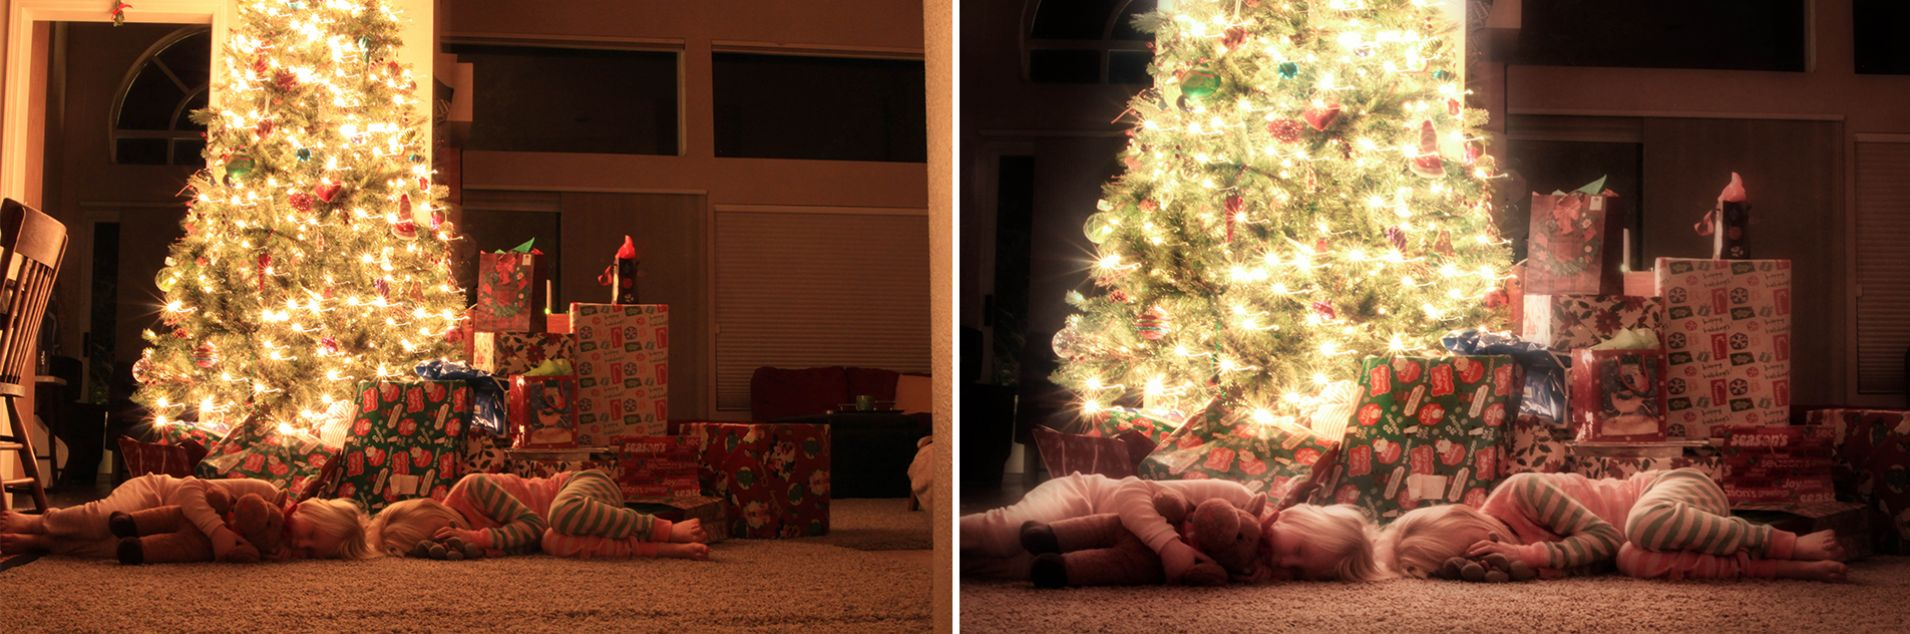 9 Tips to Make Your Holiday Photos Amazing Image5